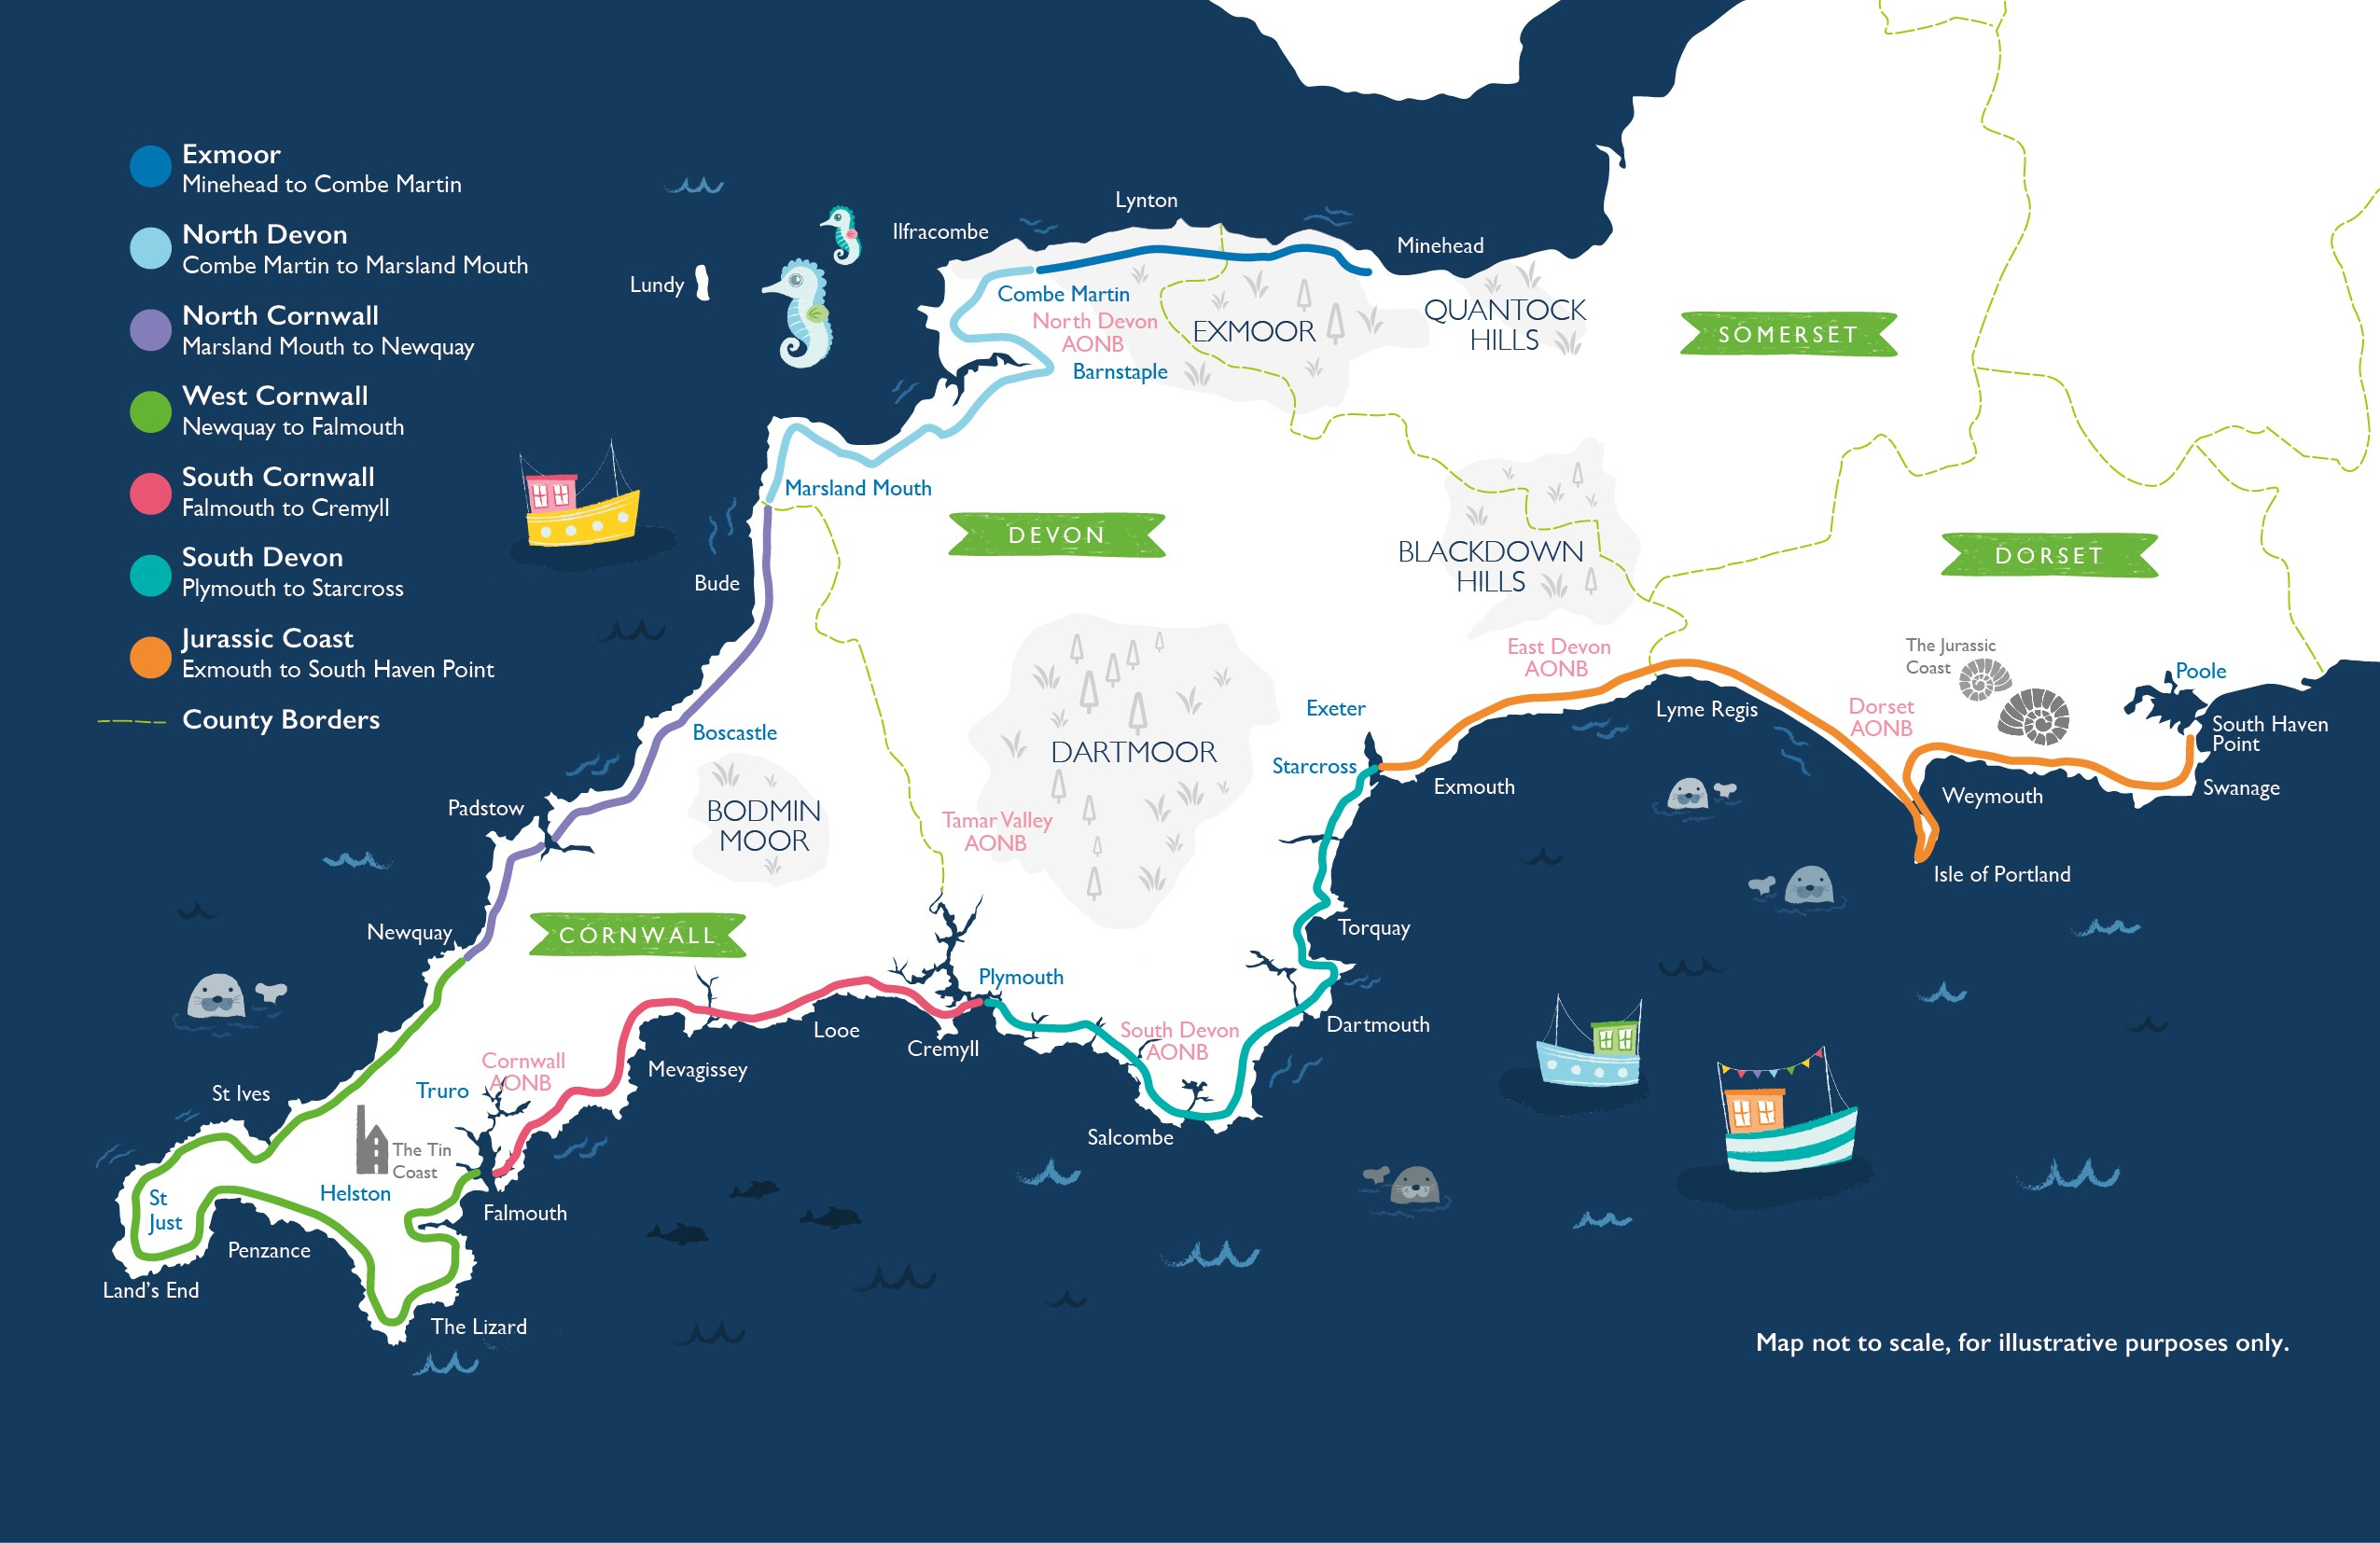 Map of The South West Coast Path from Minehead to Poole.